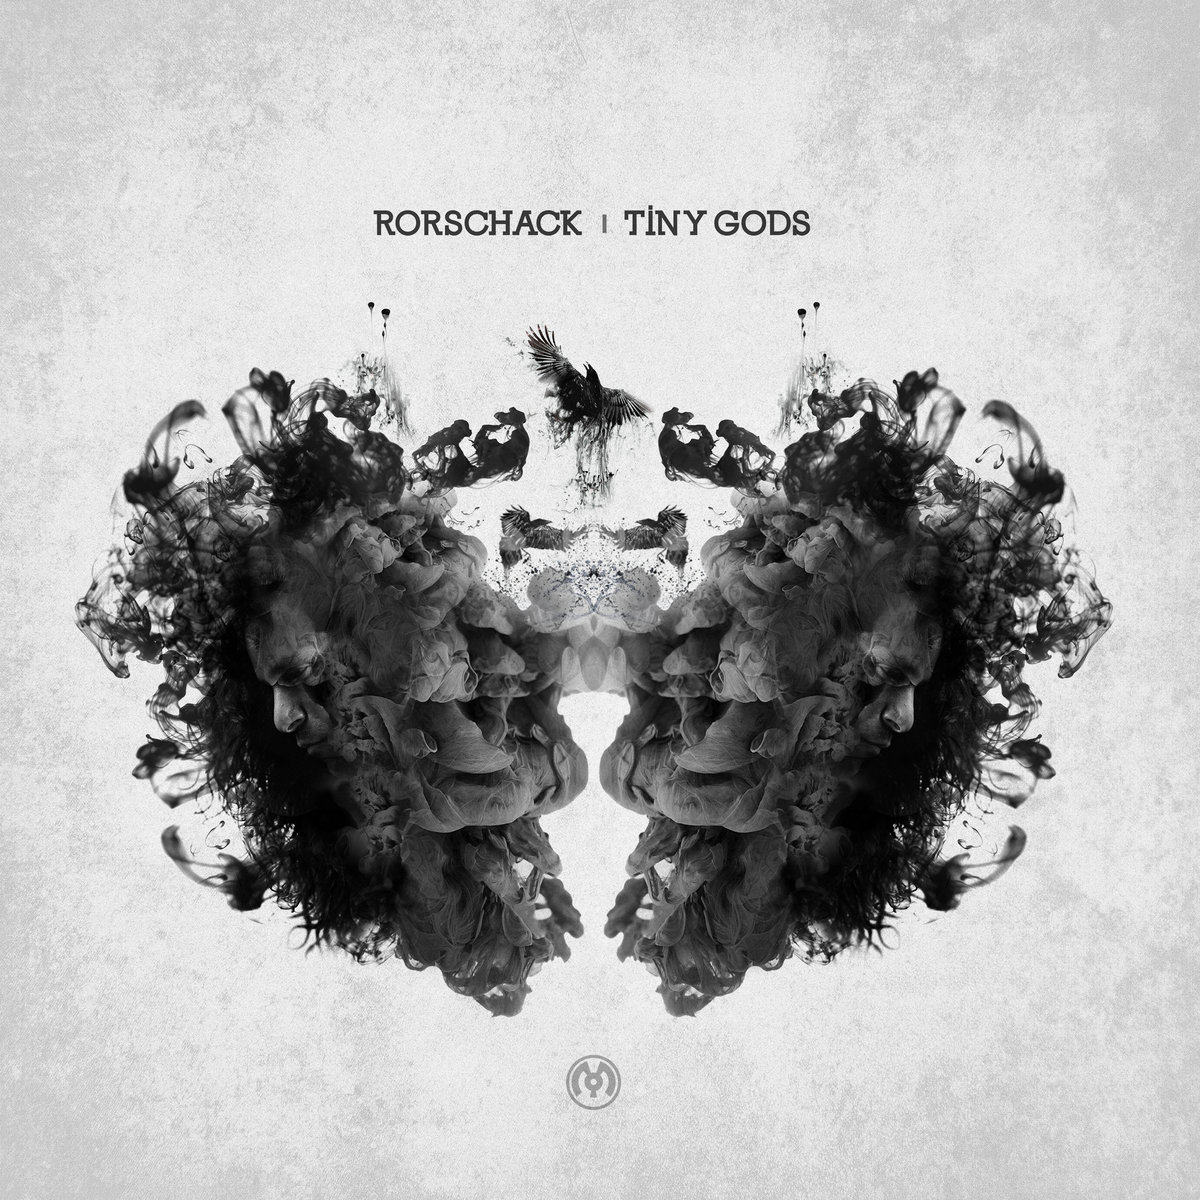 saQi feat. Worth - Whispers On The Wind (Rorschak Remix) @ 'Tiny Gods' album (electronic, dubstep)